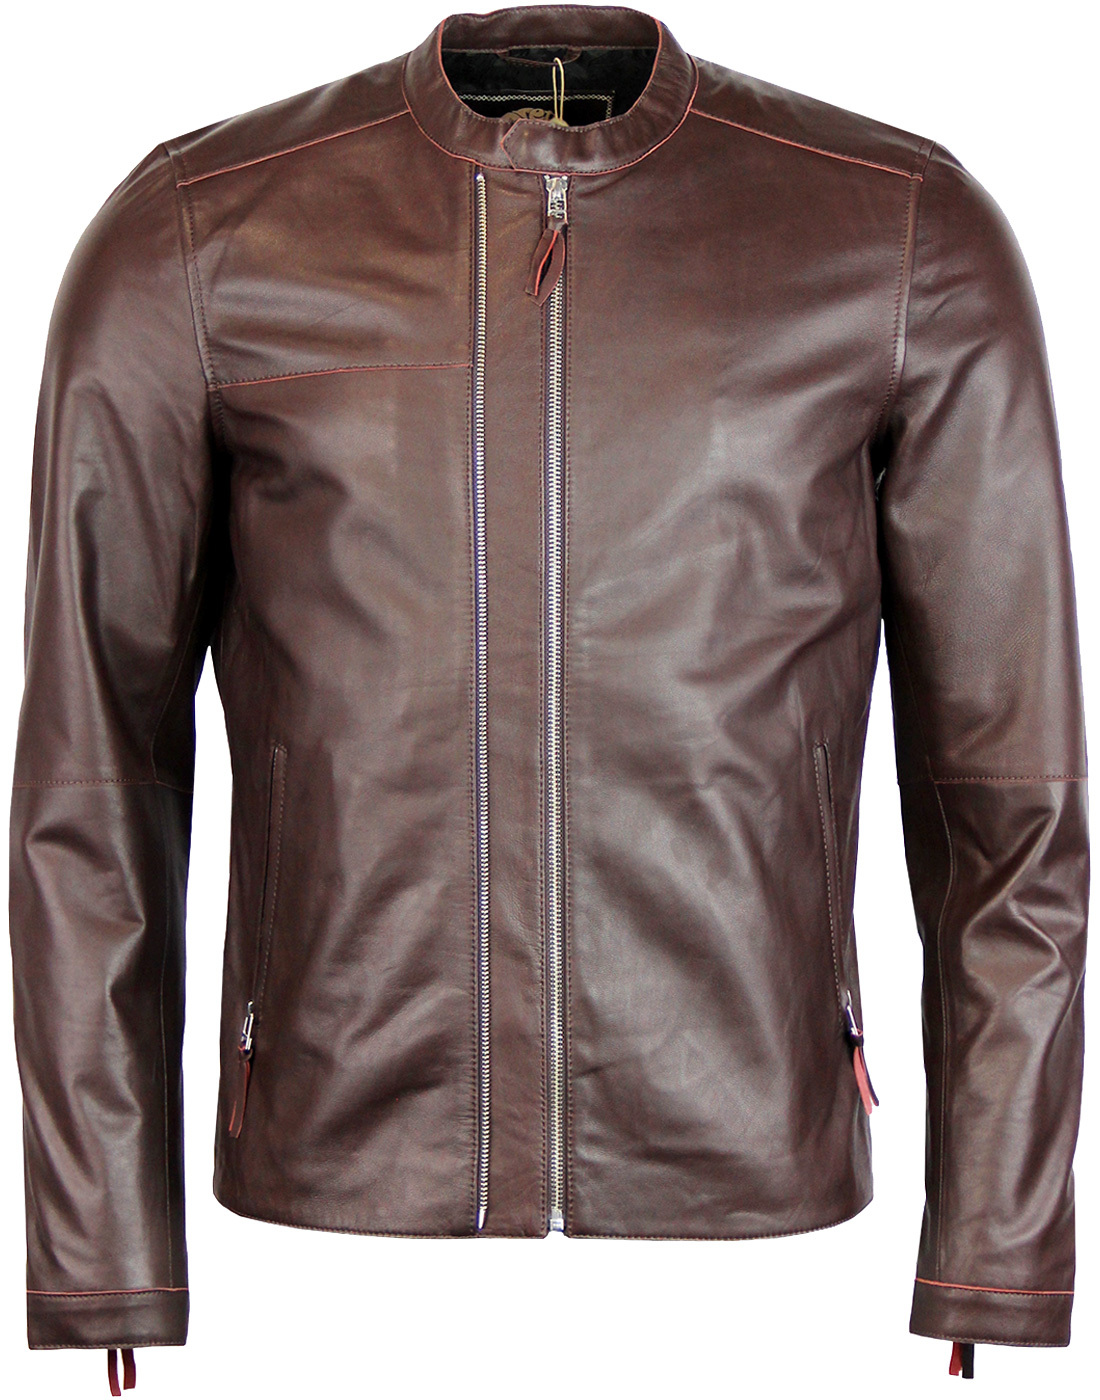 Addison PRETTY GREEN Retro Leather Biker Jacket